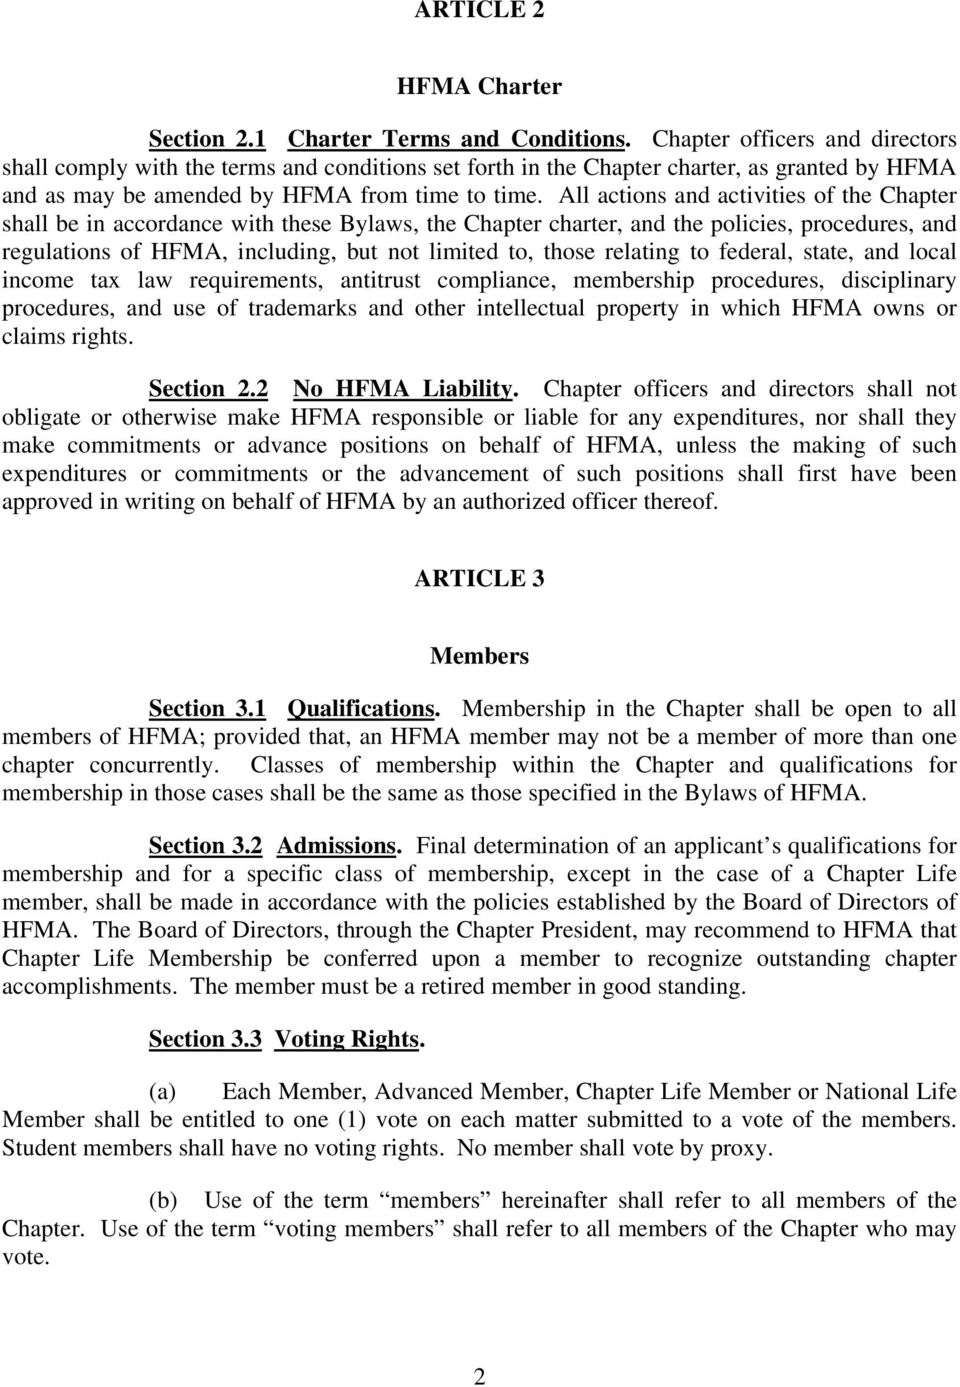 All actions and activities of the Chapter shall be in accordance with these Bylaws, the Chapter charter, and the policies, procedures, and regulations of HFMA, including, but not limited to, those